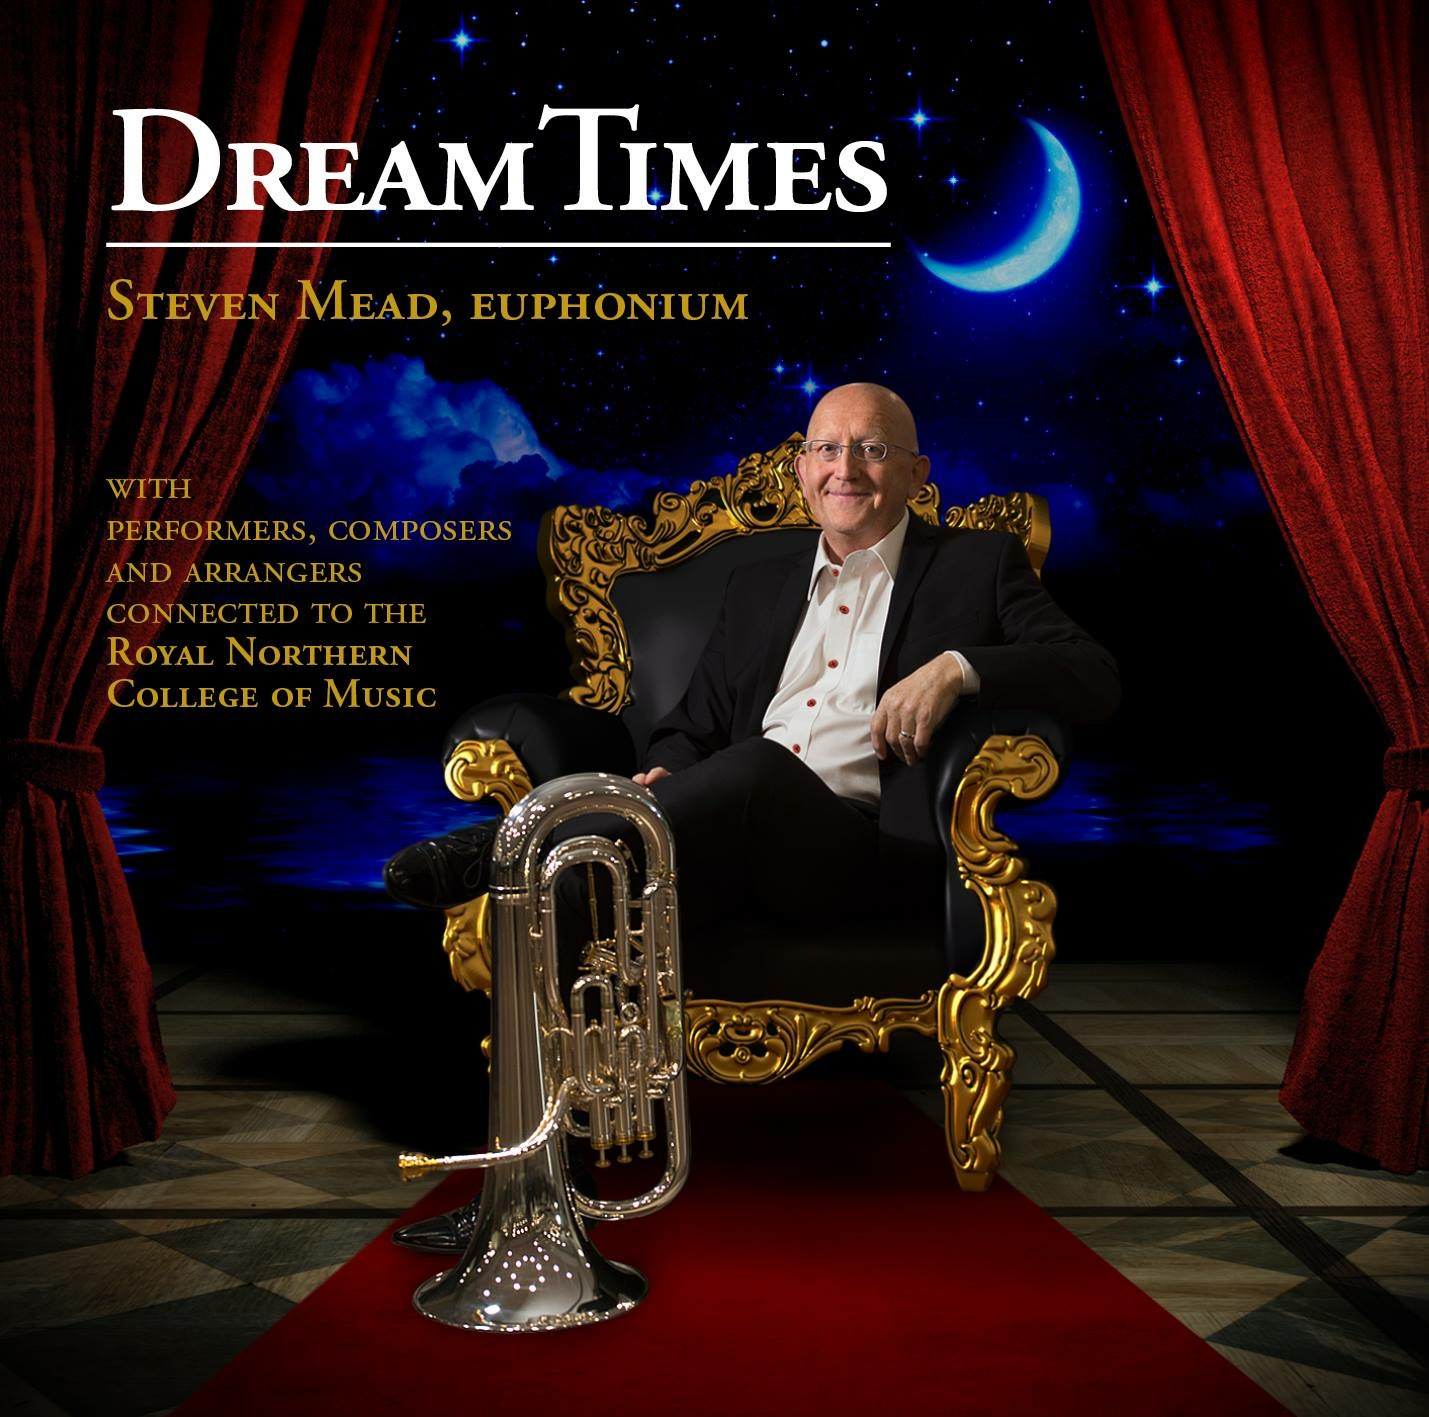 Dream times CD cover